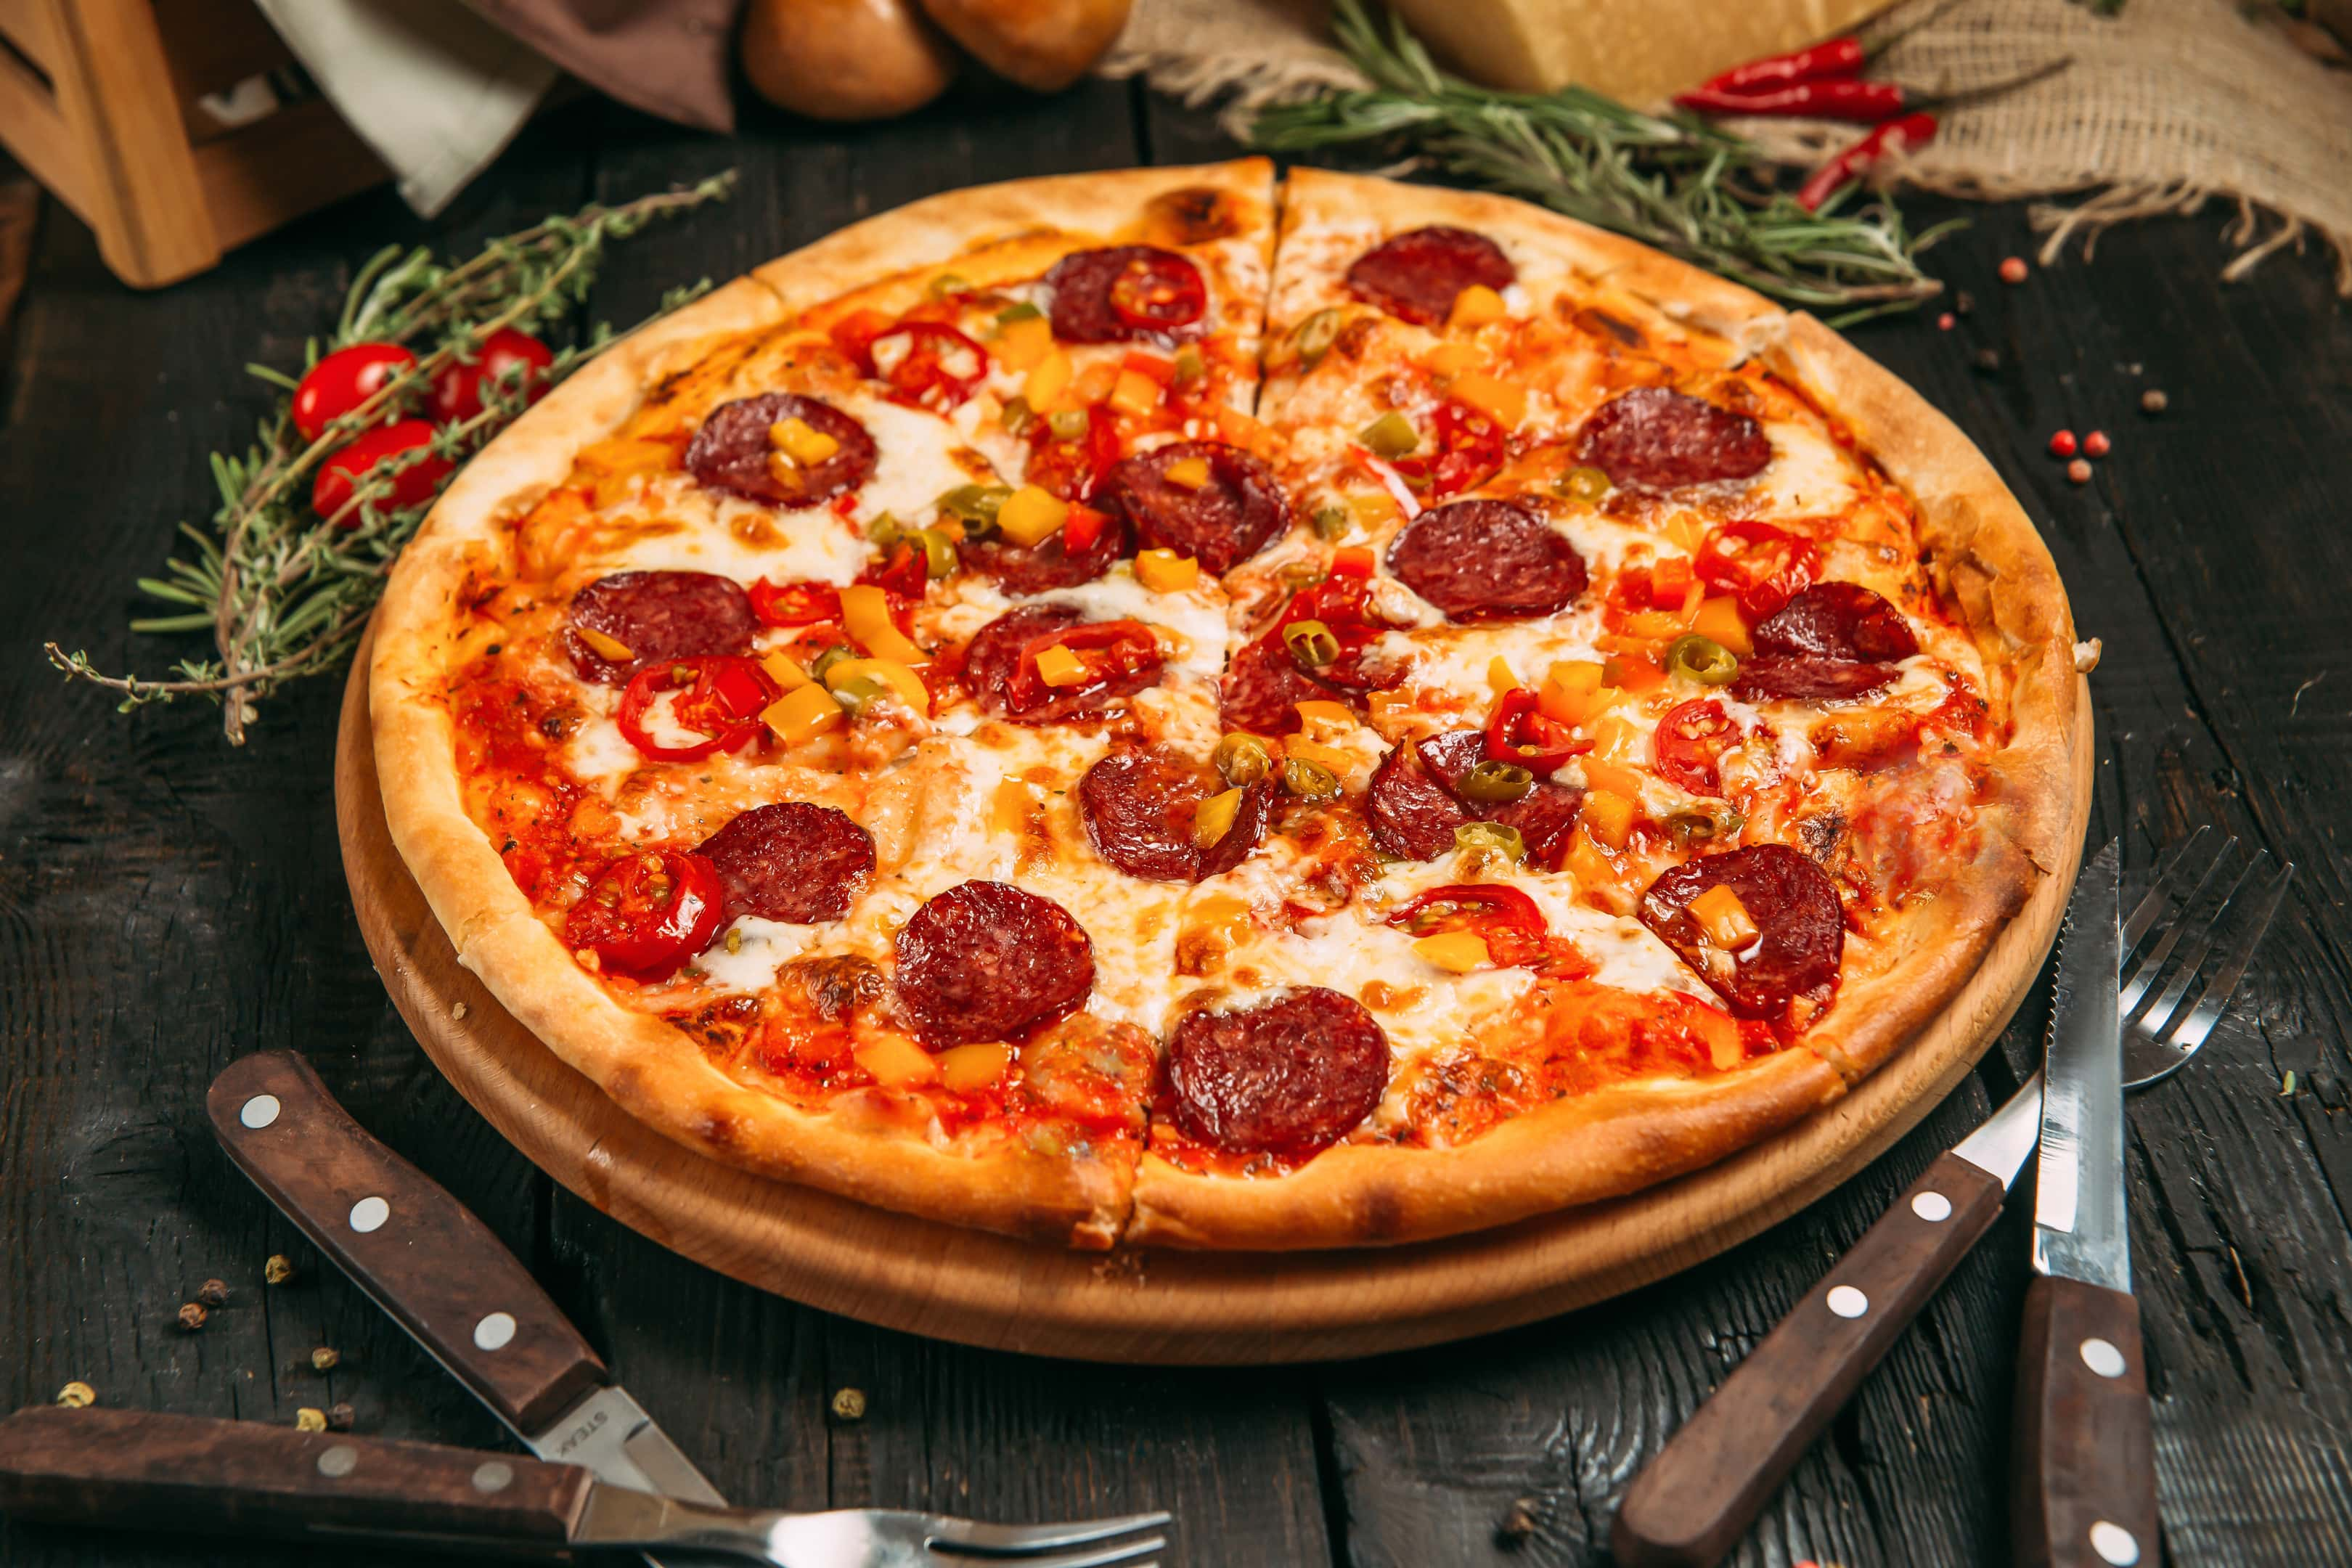 Delicious savory pizza with pepperoni and pepper on dark wooden table